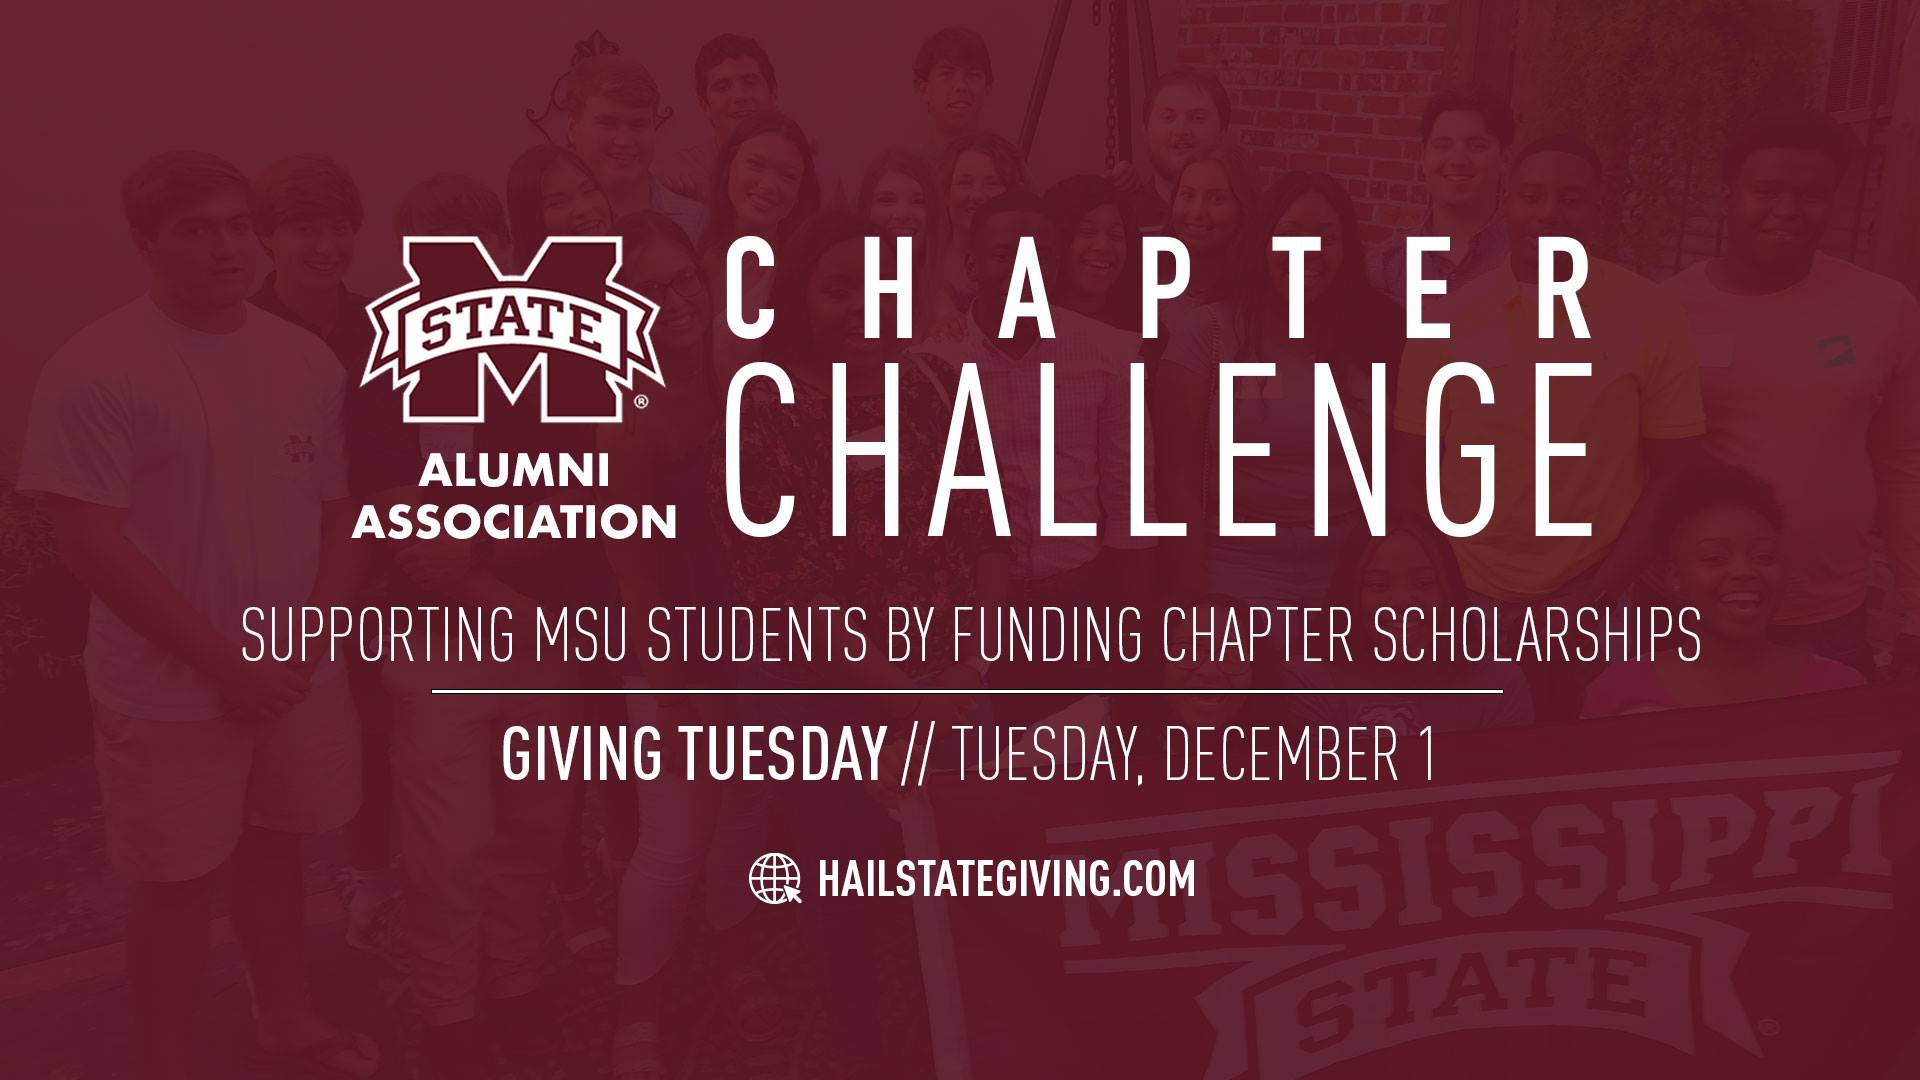 Graphic promoting M-State Chapter Challenge for student scholarship support